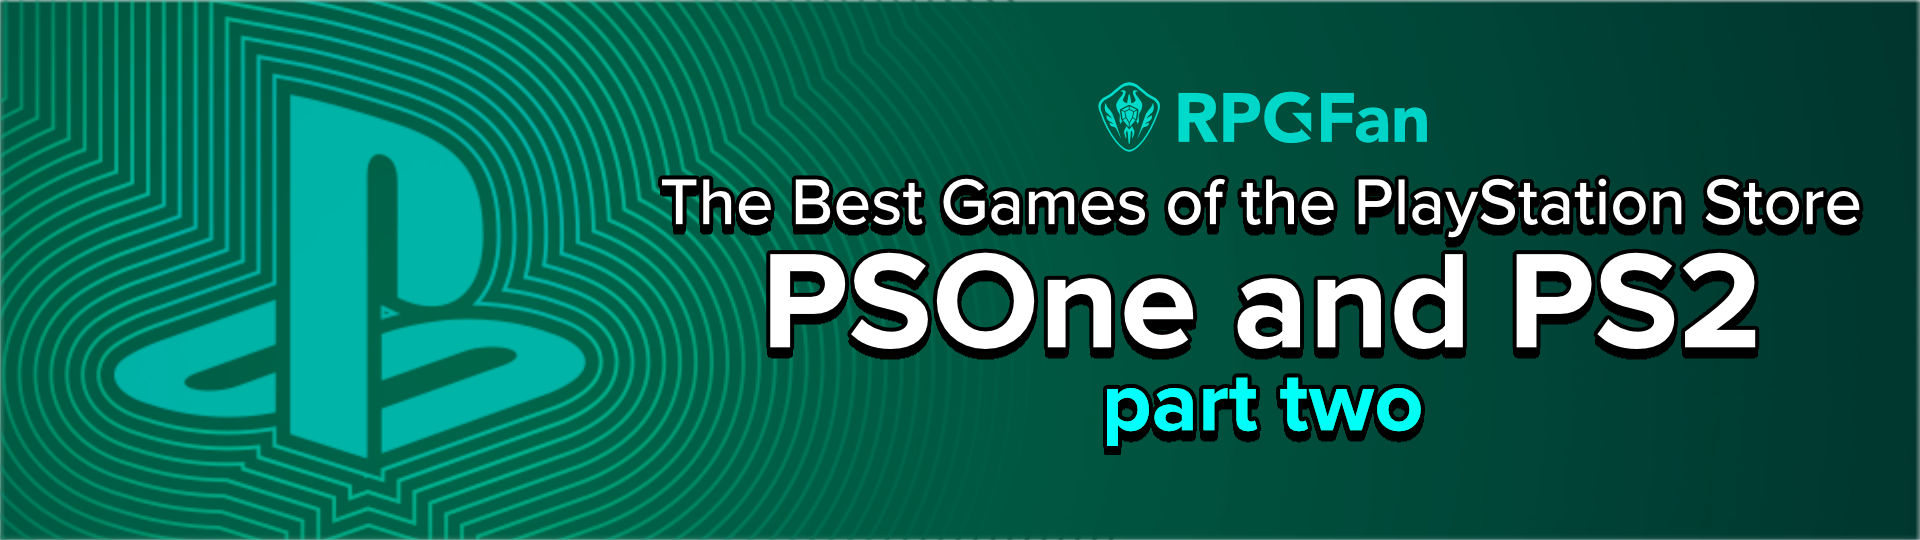 The Best Games of the PlayStation Store PSOne and PS2 Part Two